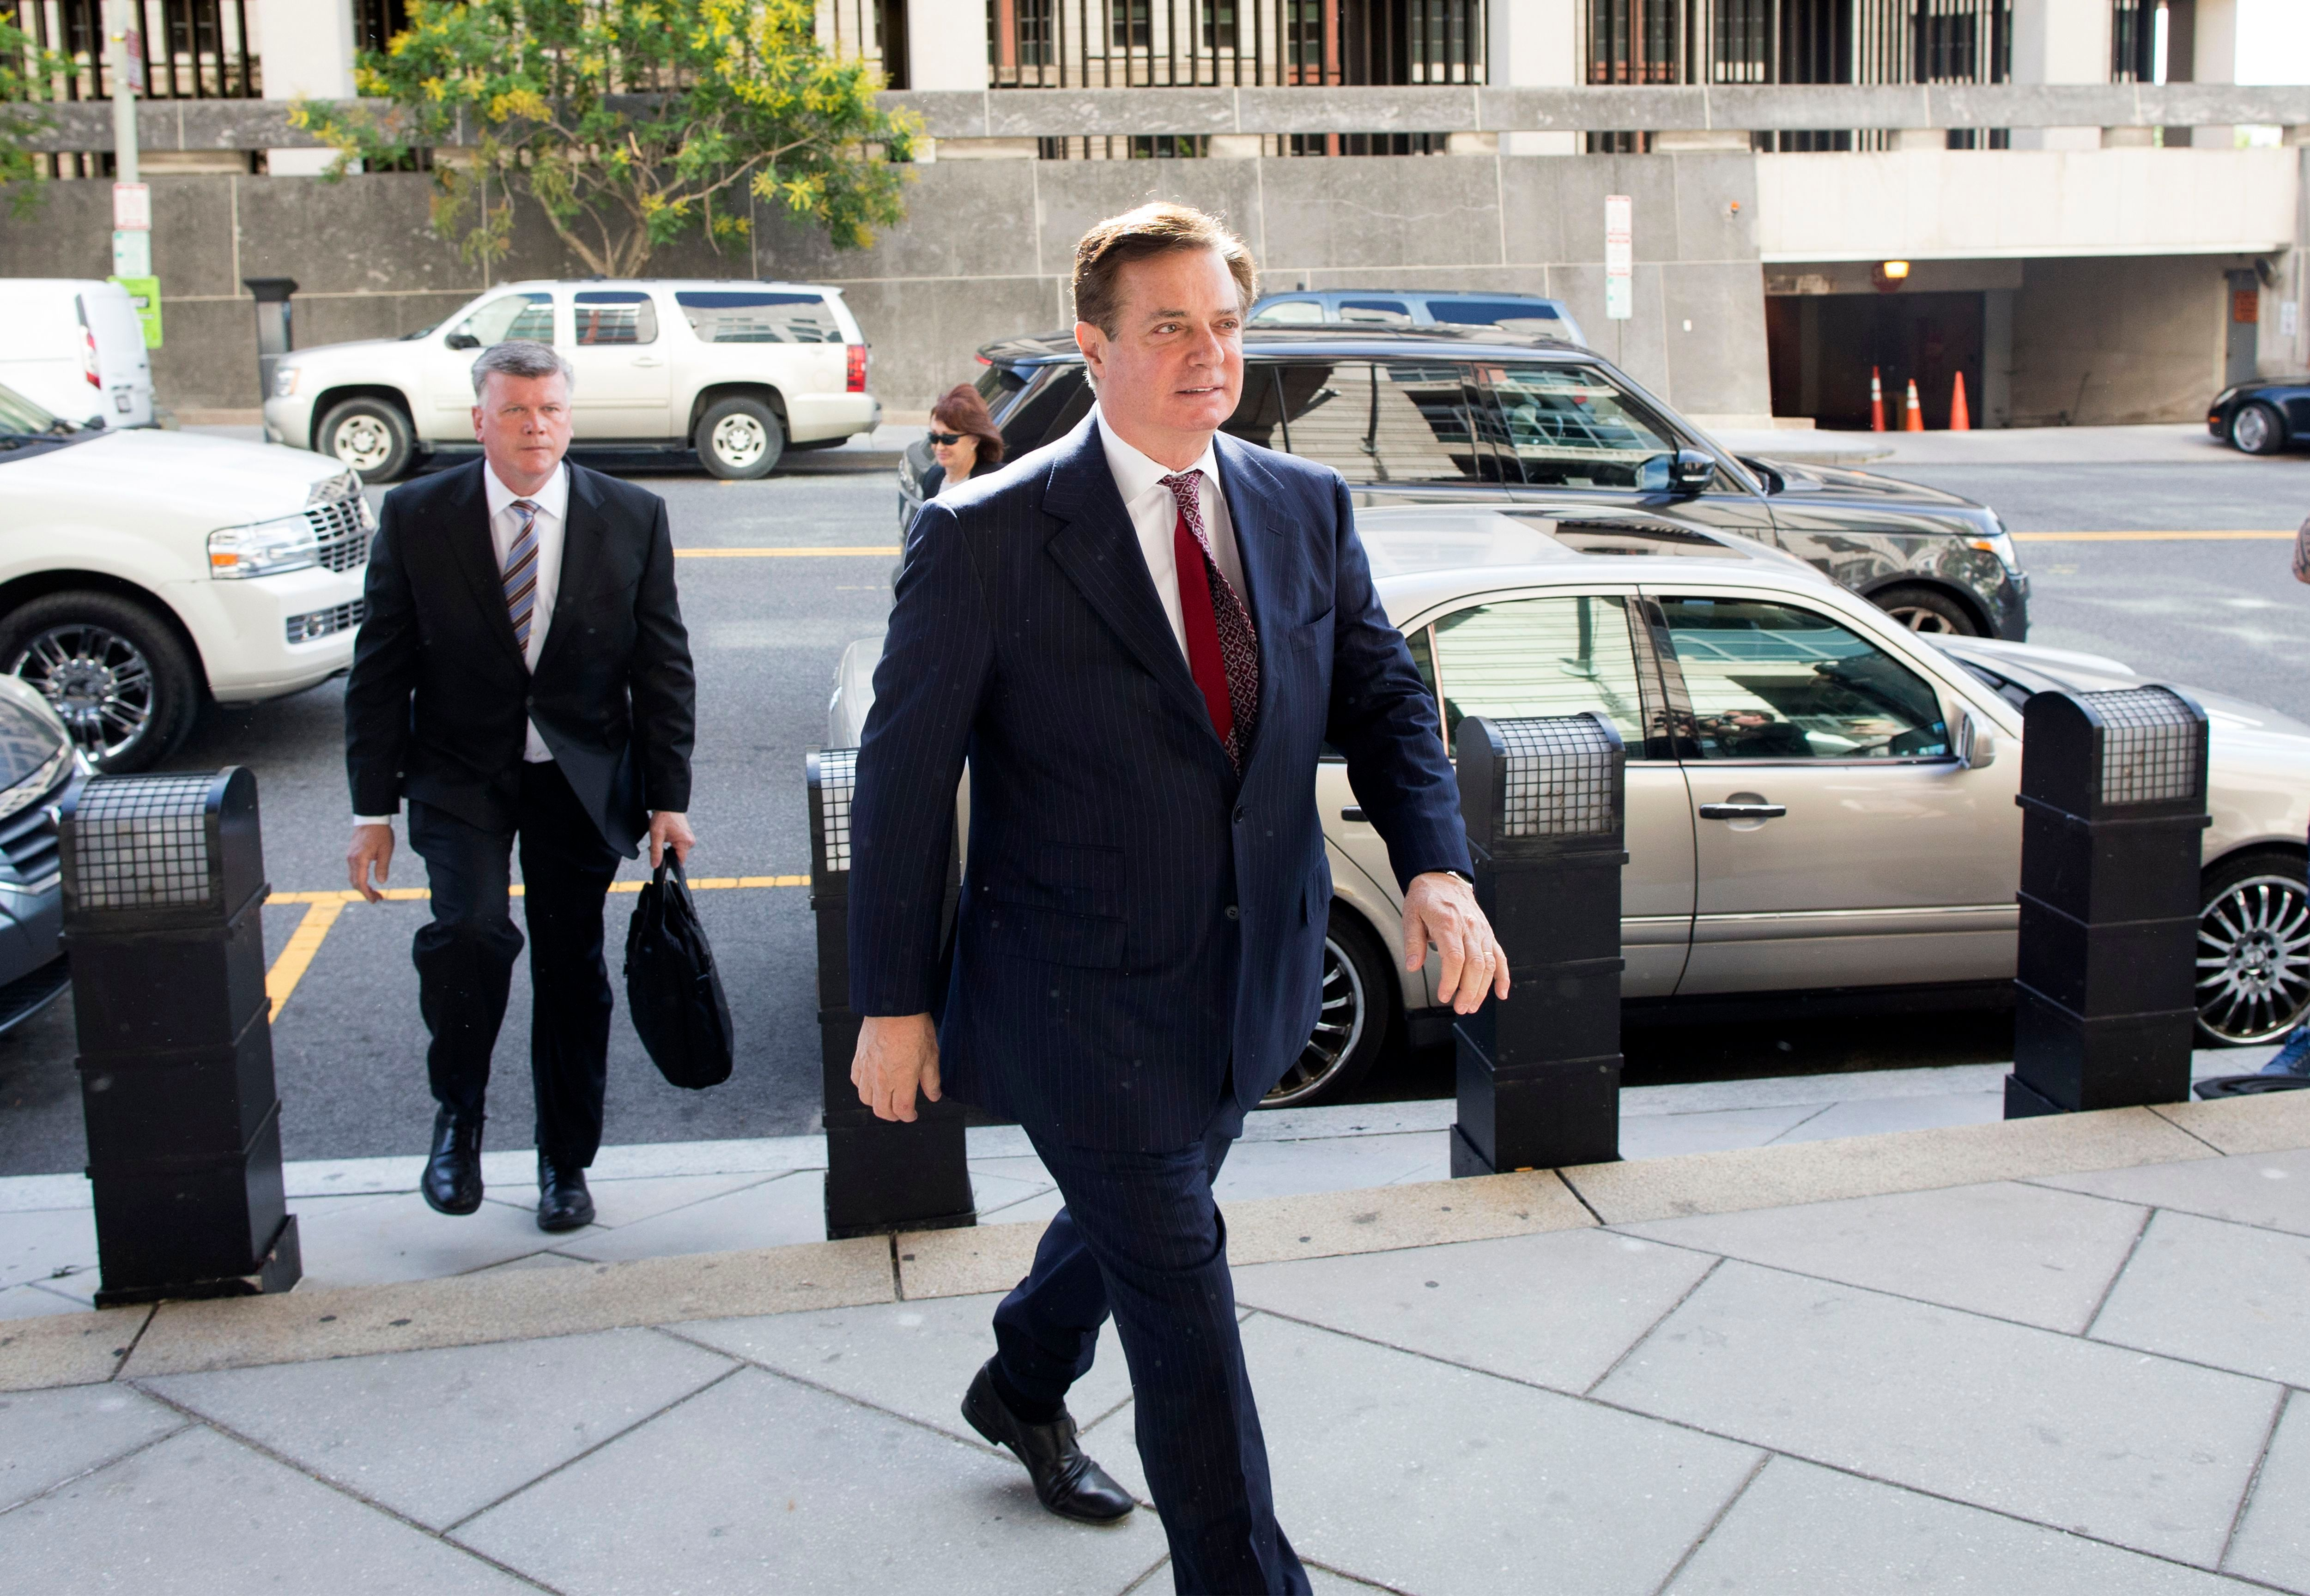 Former Trump campaign chairman Paul Manafort (C) and his attorney Kevin Downing (L) arrive at the Federal Courthouse in Washington, DC, USA, 15 June 2018.